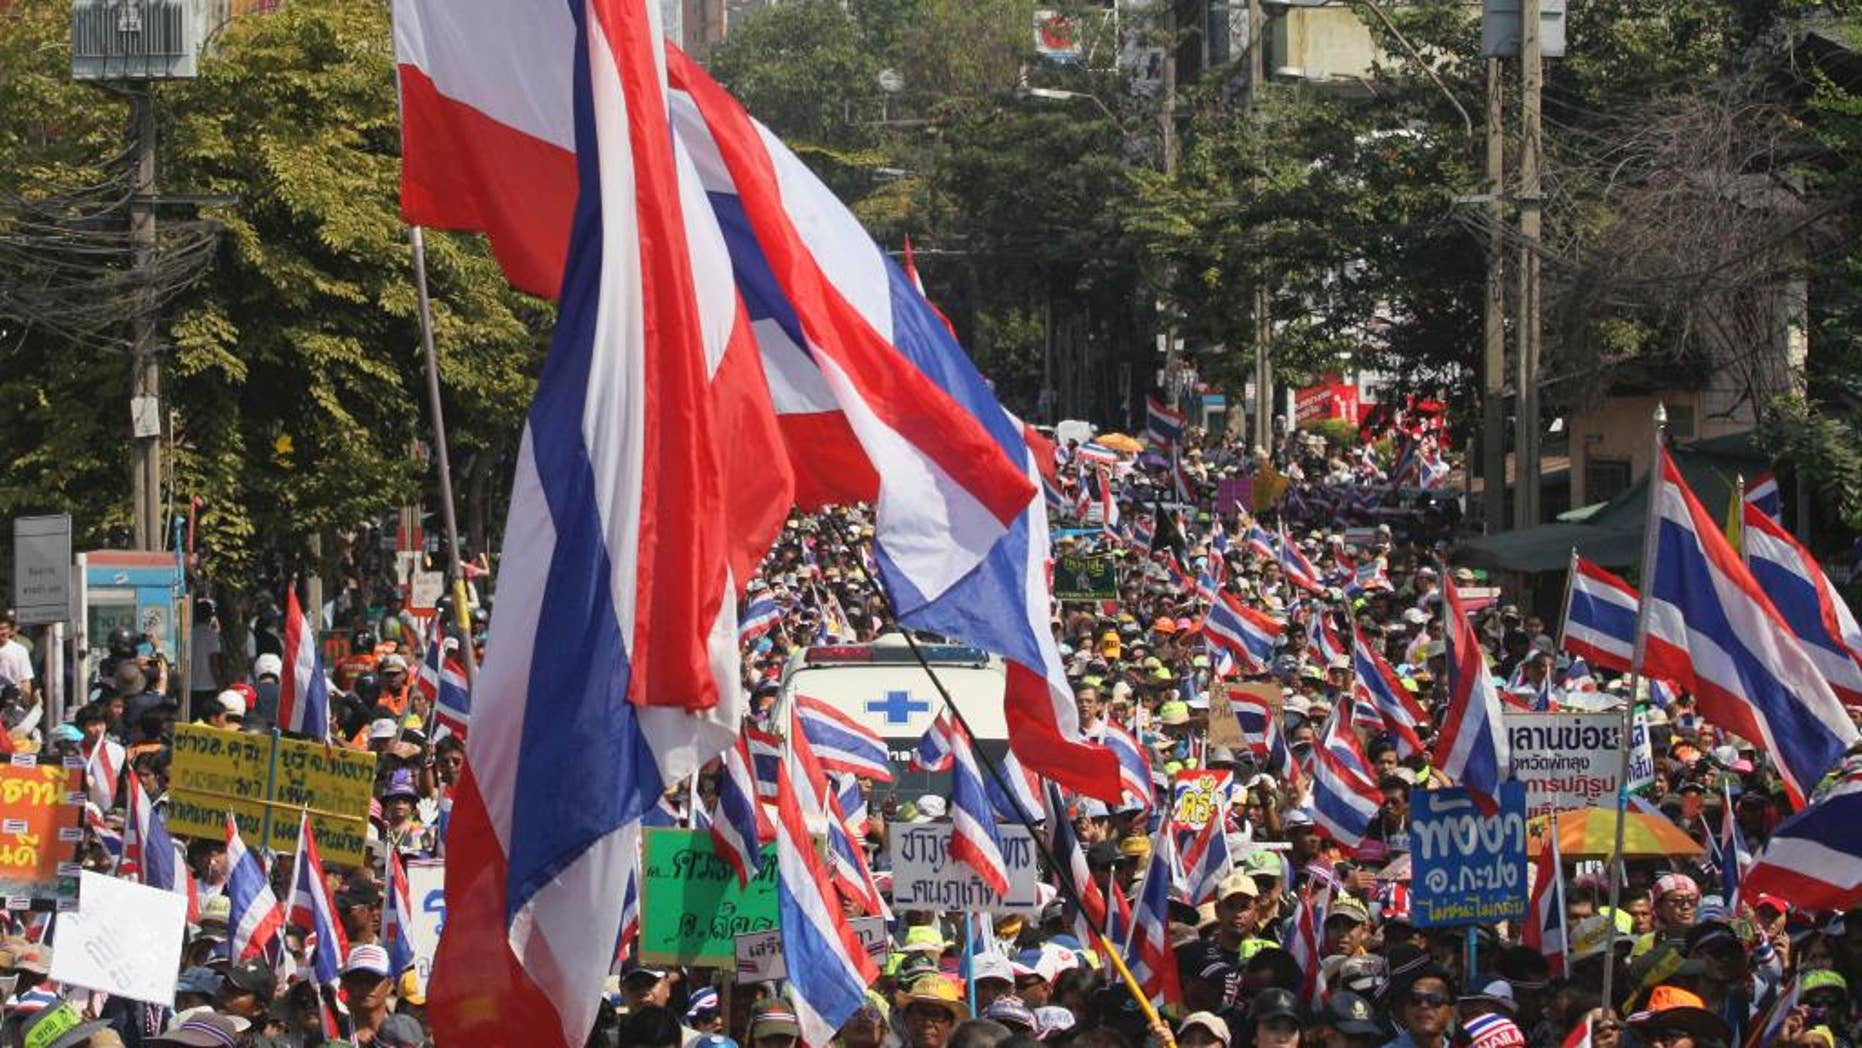 FILE - In this Jan. 18, 2014 file photo, Thai anti-government protesters march on a street during a rally in Bangkok, Thailand. Thailand's military-installed prime minister defended a new law that places tight restrictions on public gatherings and warned Thursday, Aug. 13, 2015 it will be strictly enforced. Human rights groups have voiced concern about the Public Assembly Act, which took effect Thursday, and its stiff penalties.  (AP Photo/Sakchai Lalit, File)